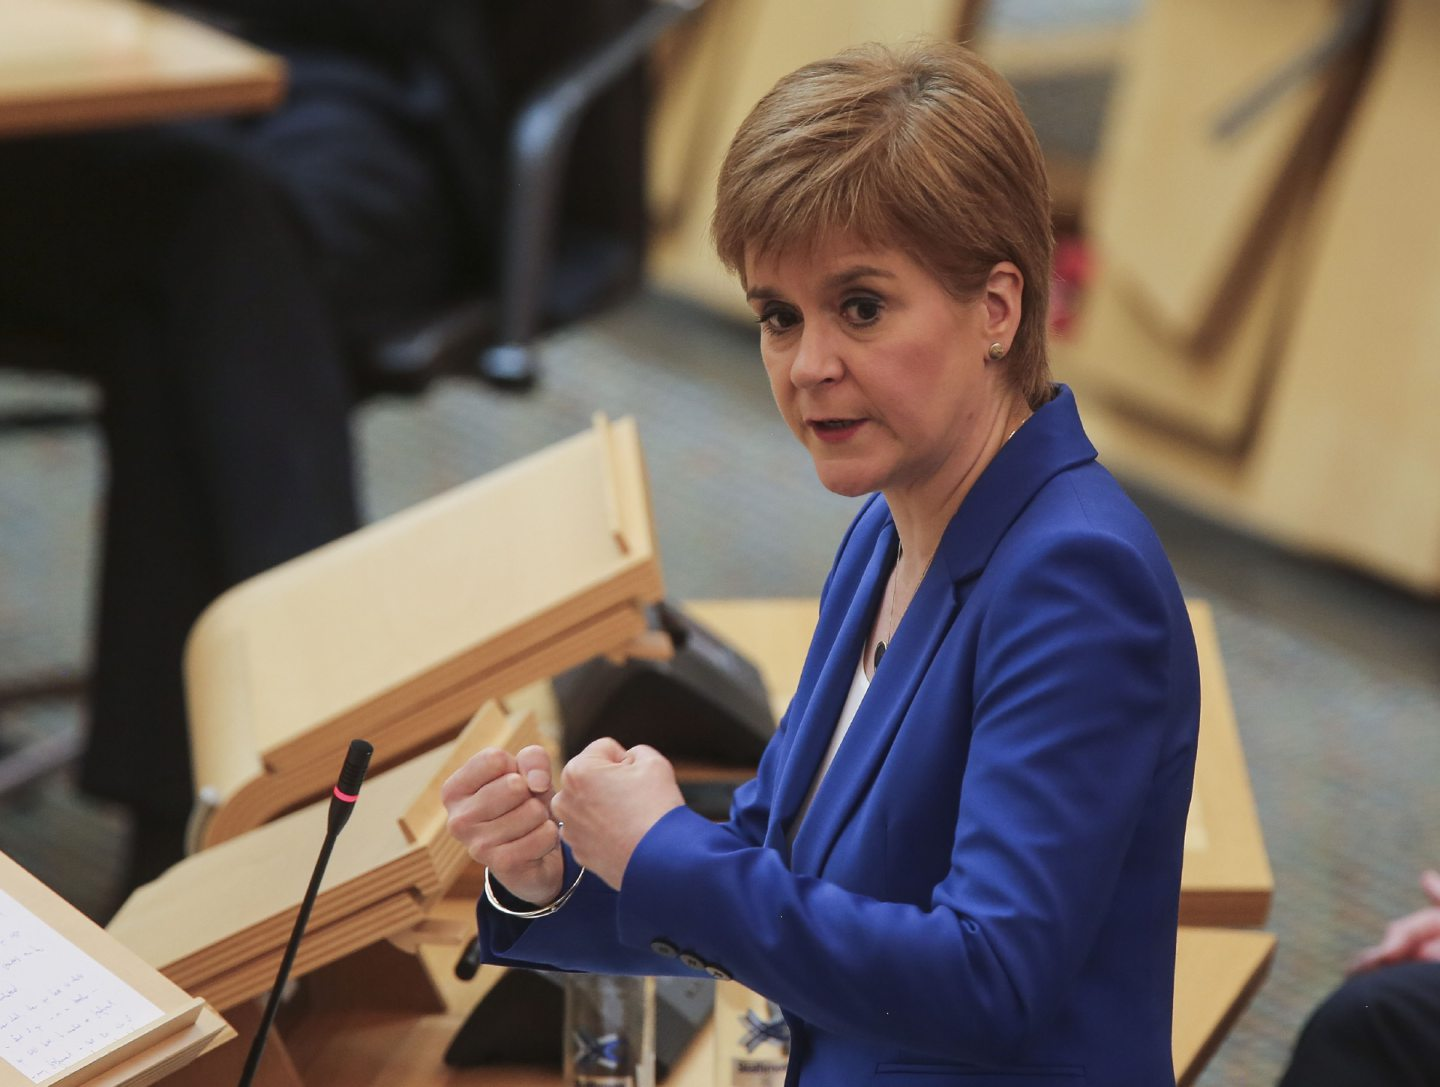 First Minister Nicola Sturgeon during First Minister's Questions held at the Scottish Parliament.